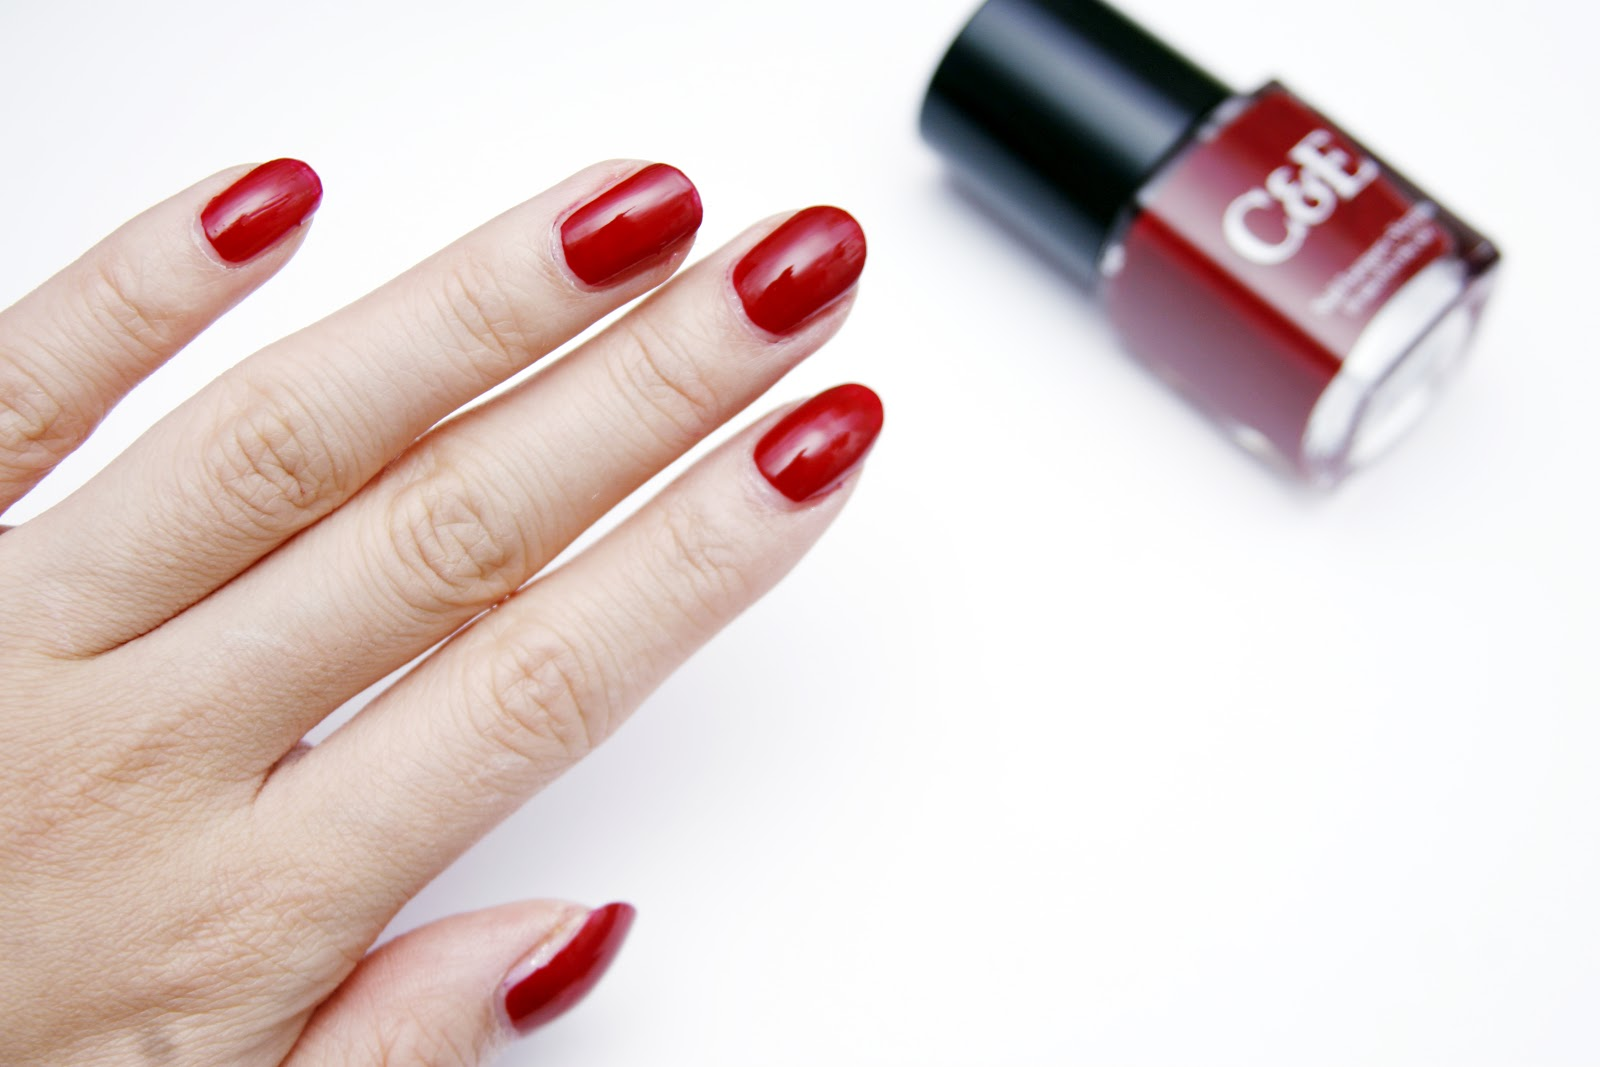 fun size beauty: Crabtree & Evelyn Festive Favourites Nail Lacquer ...